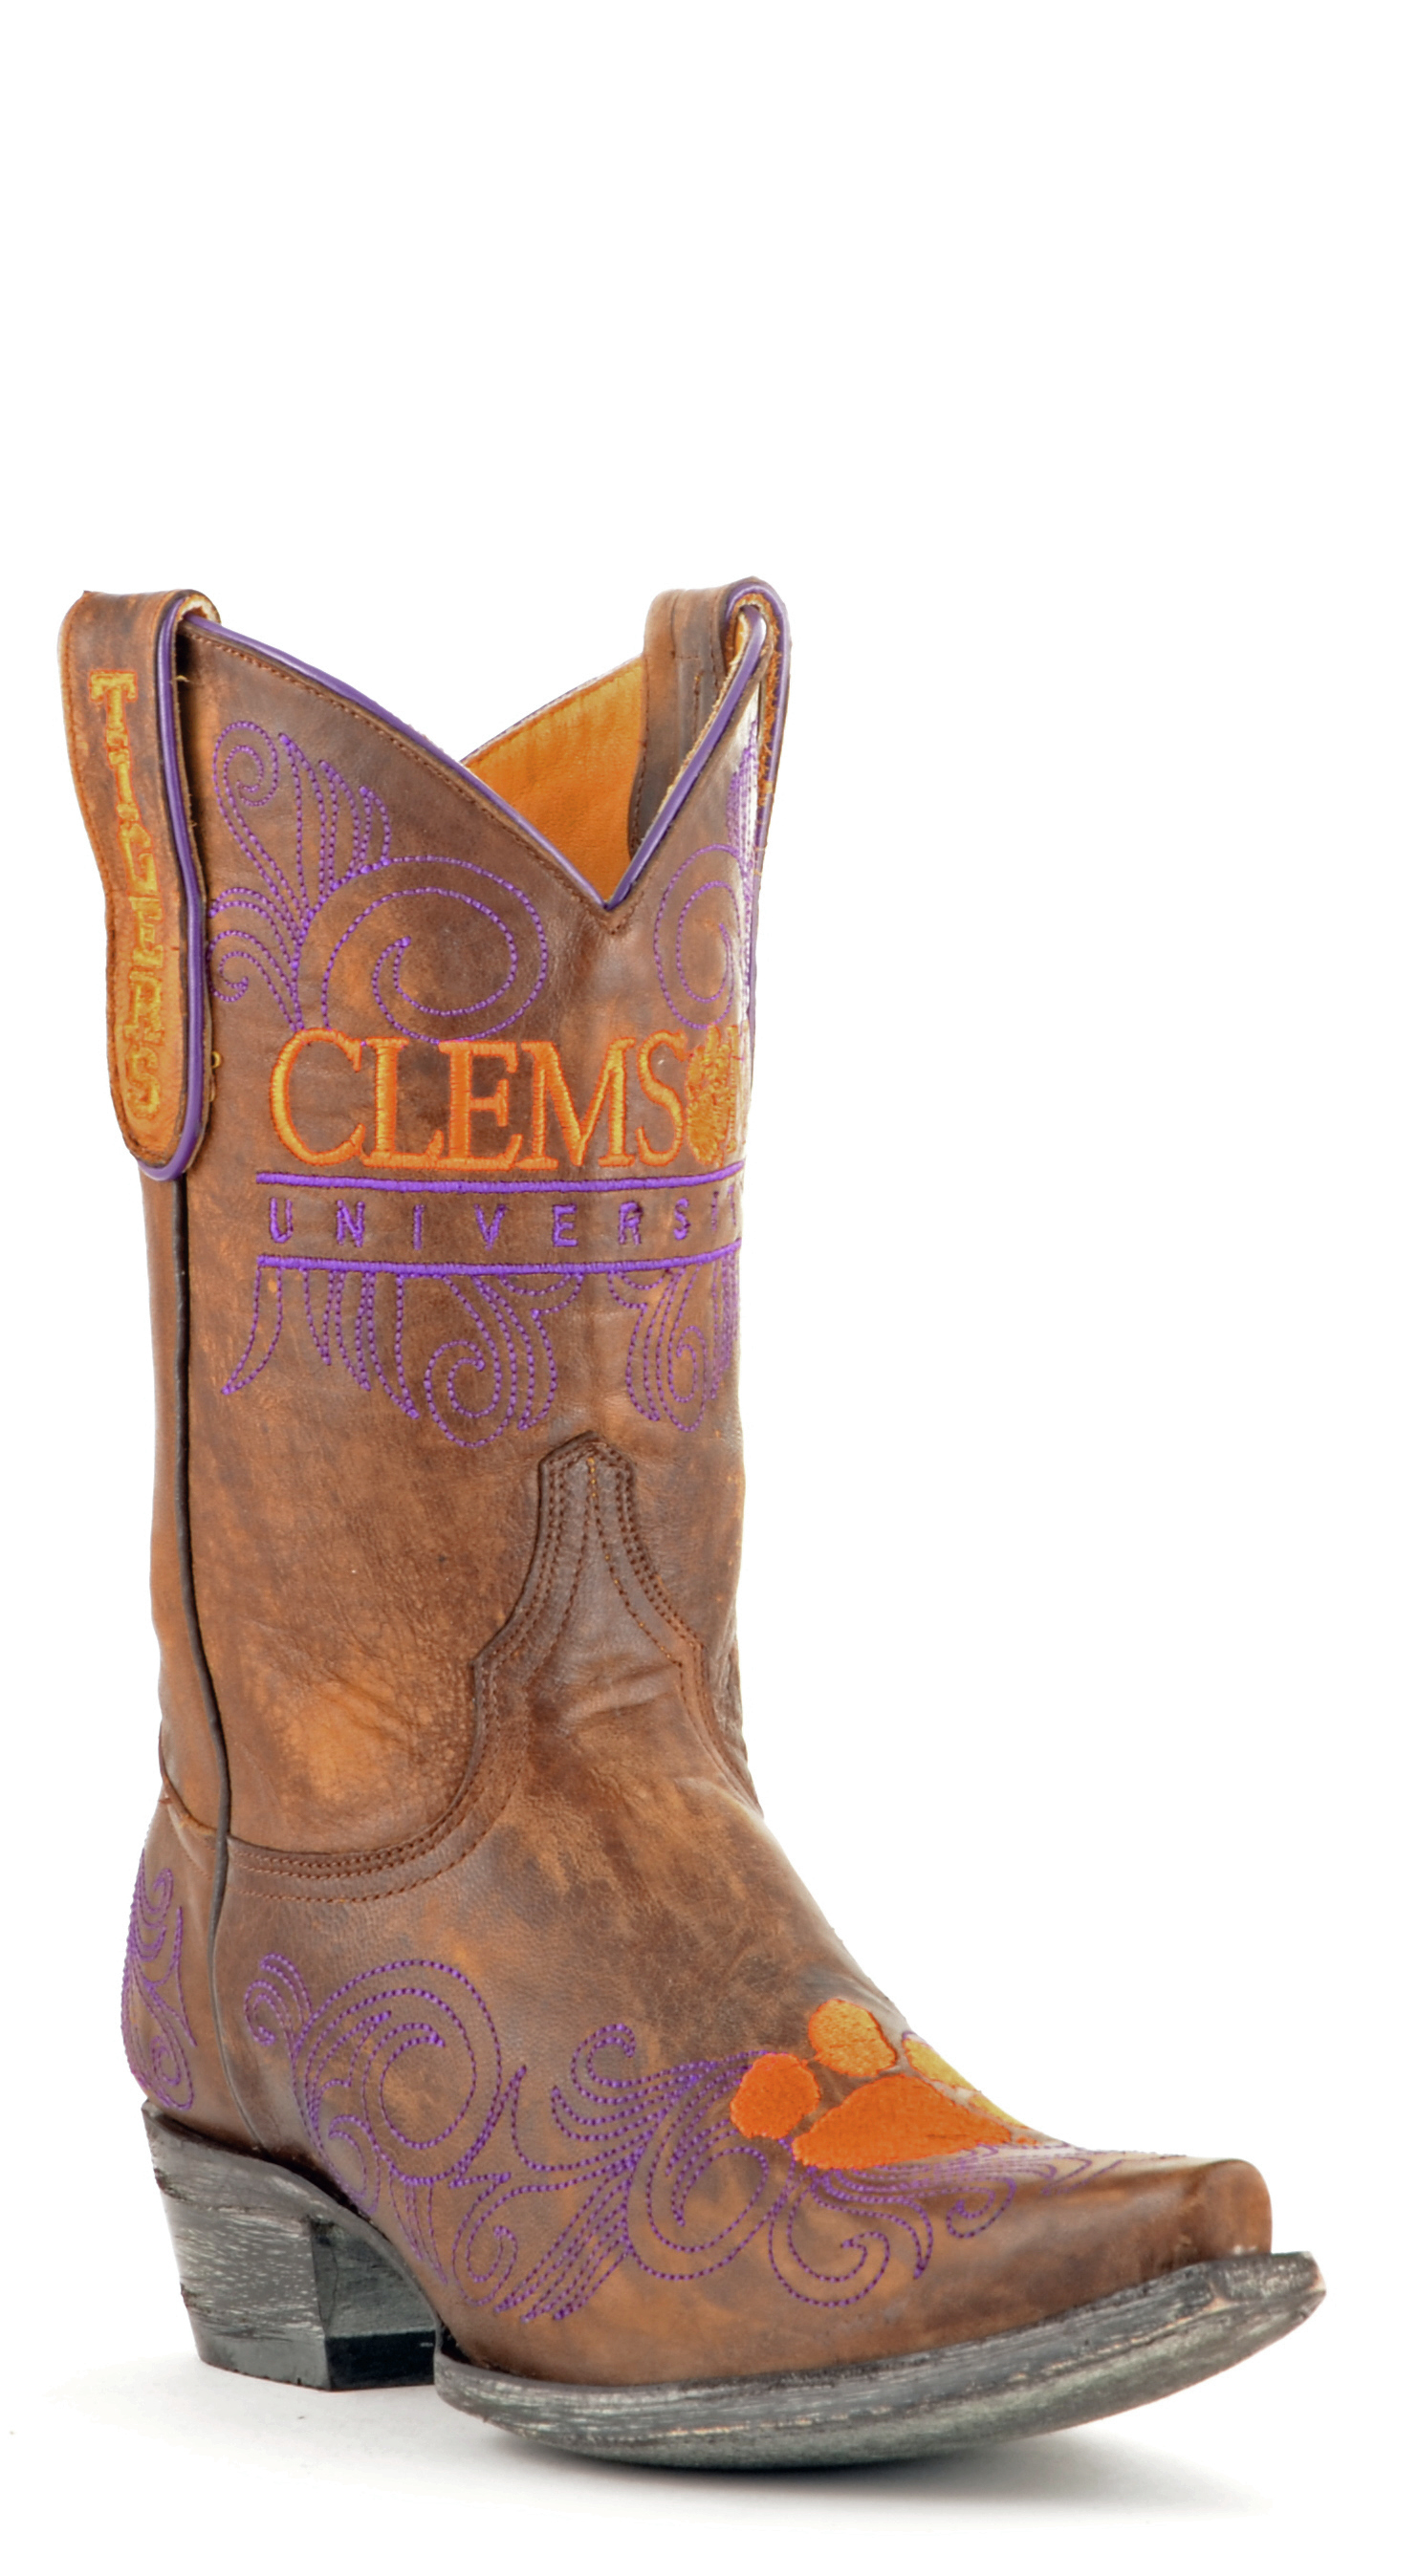 Gameday Boots Womens College Clemson Tigers Brass Orange CL-L108-1 by Gameday Boots